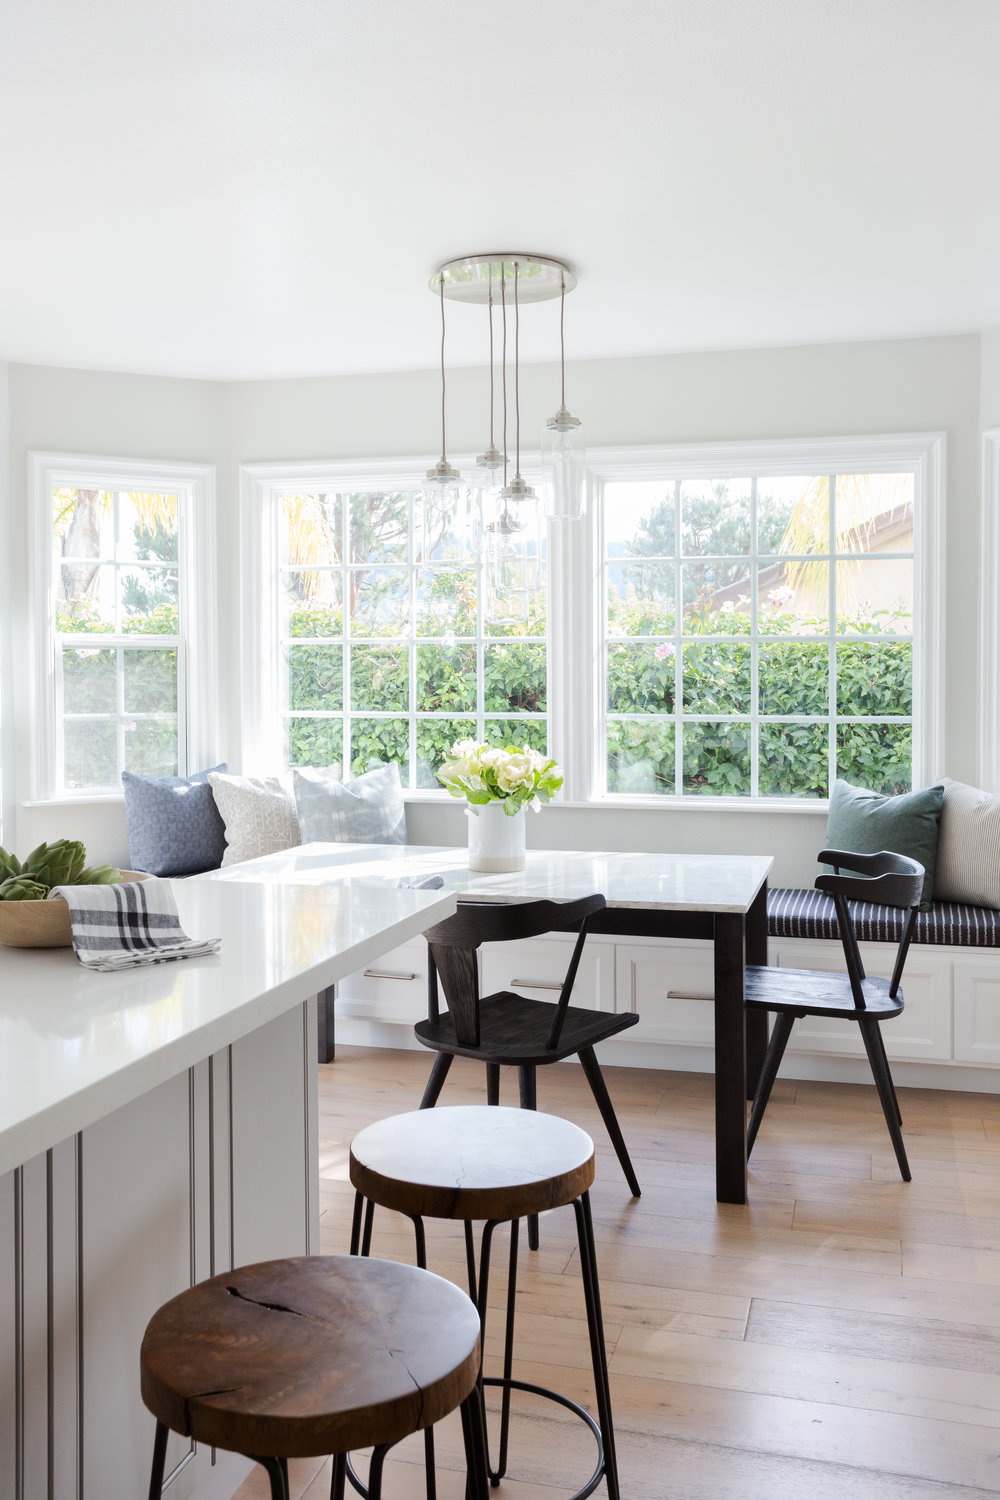 Casual traditional breakfast nook designed by Lindsey Brooke Design in Los Angeles.jpg